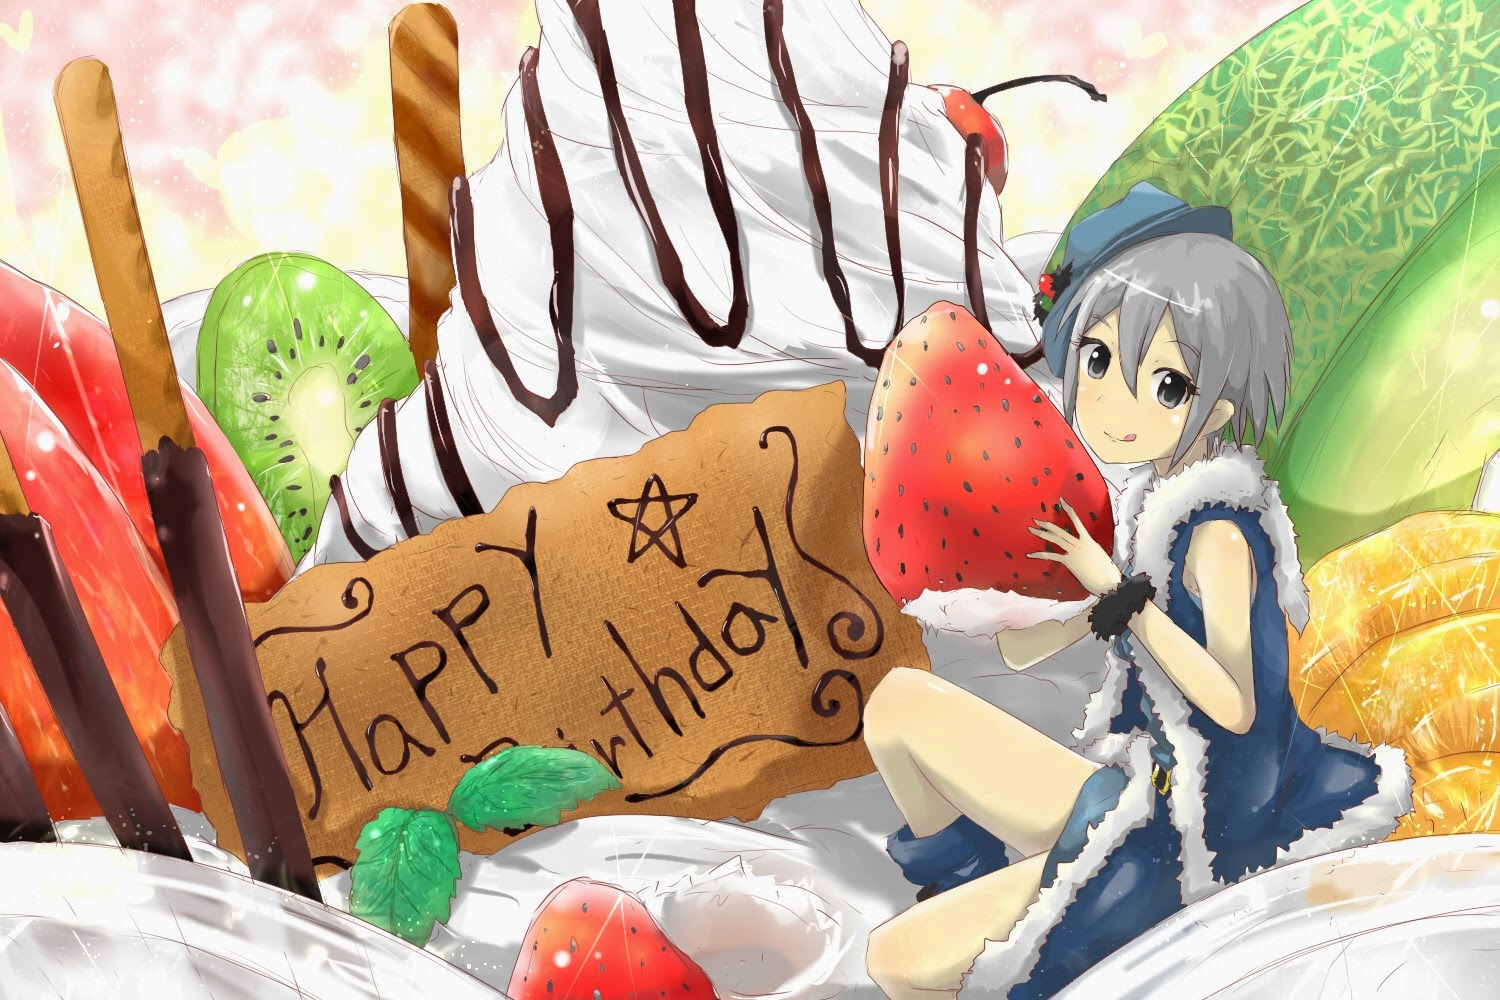 Cute-Anime-Girl-Wishes-Happy-Birthday-1500x1000.jpg